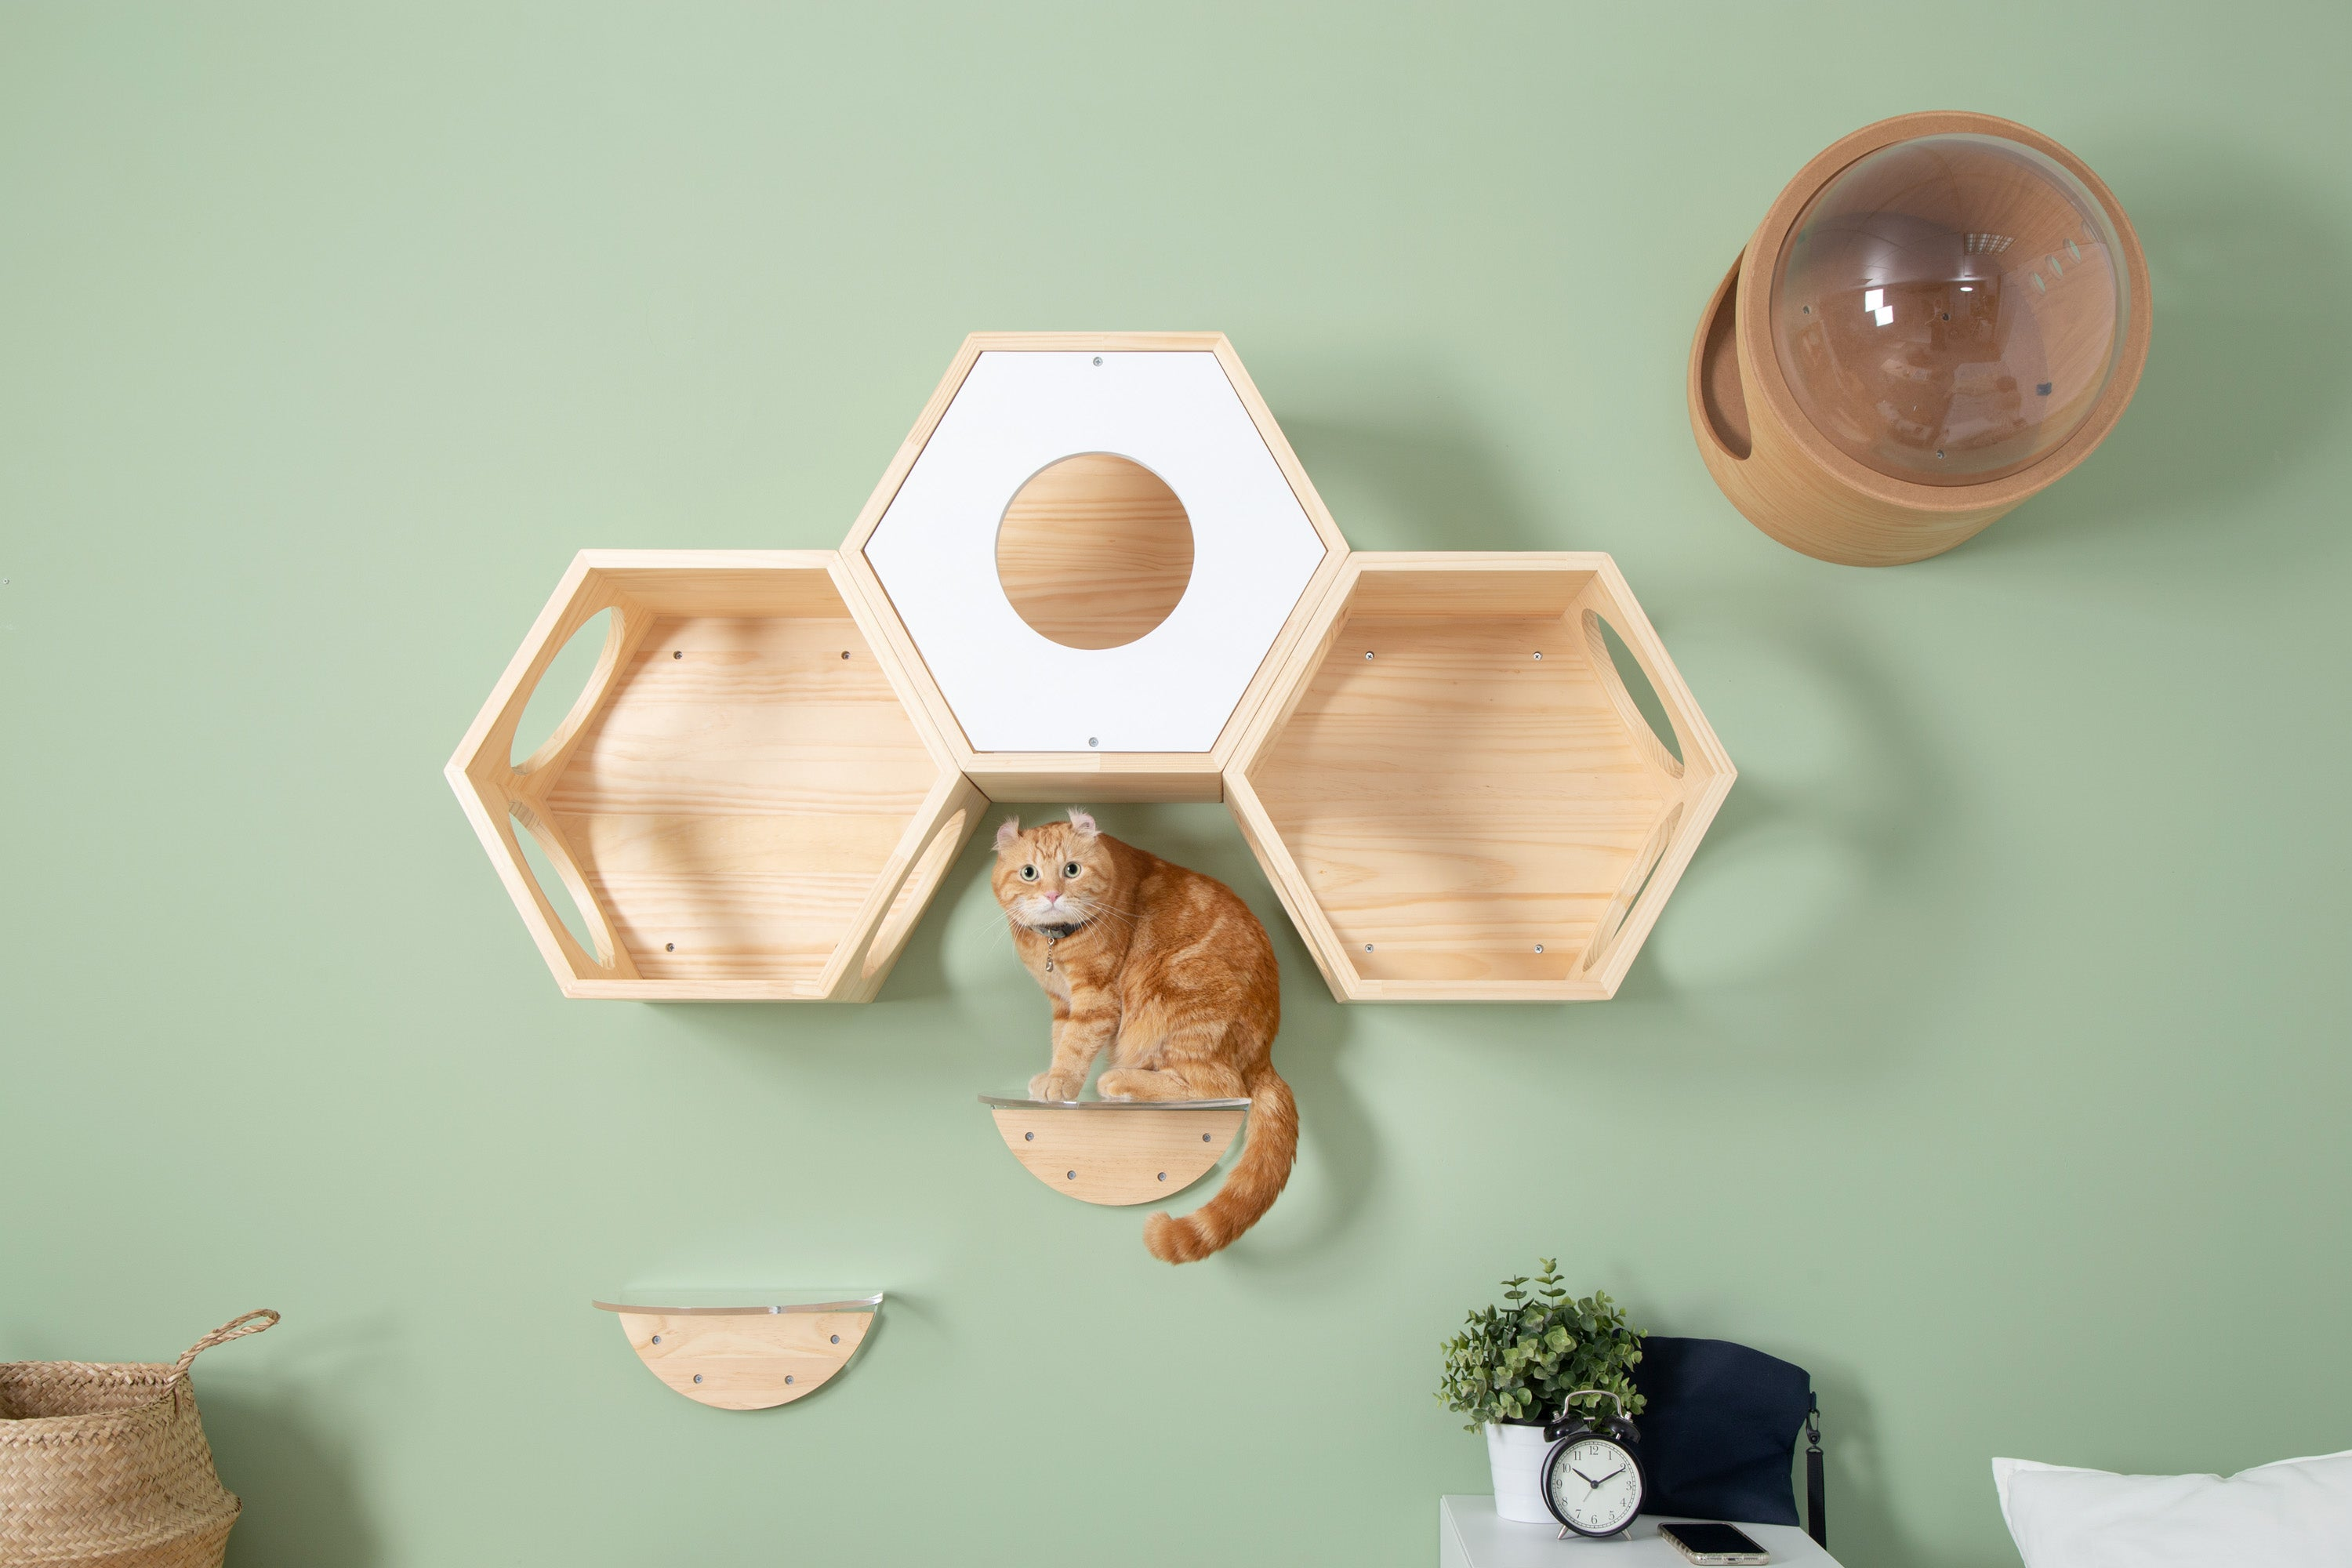 A brown cat sit on a transparent floating cat shelf